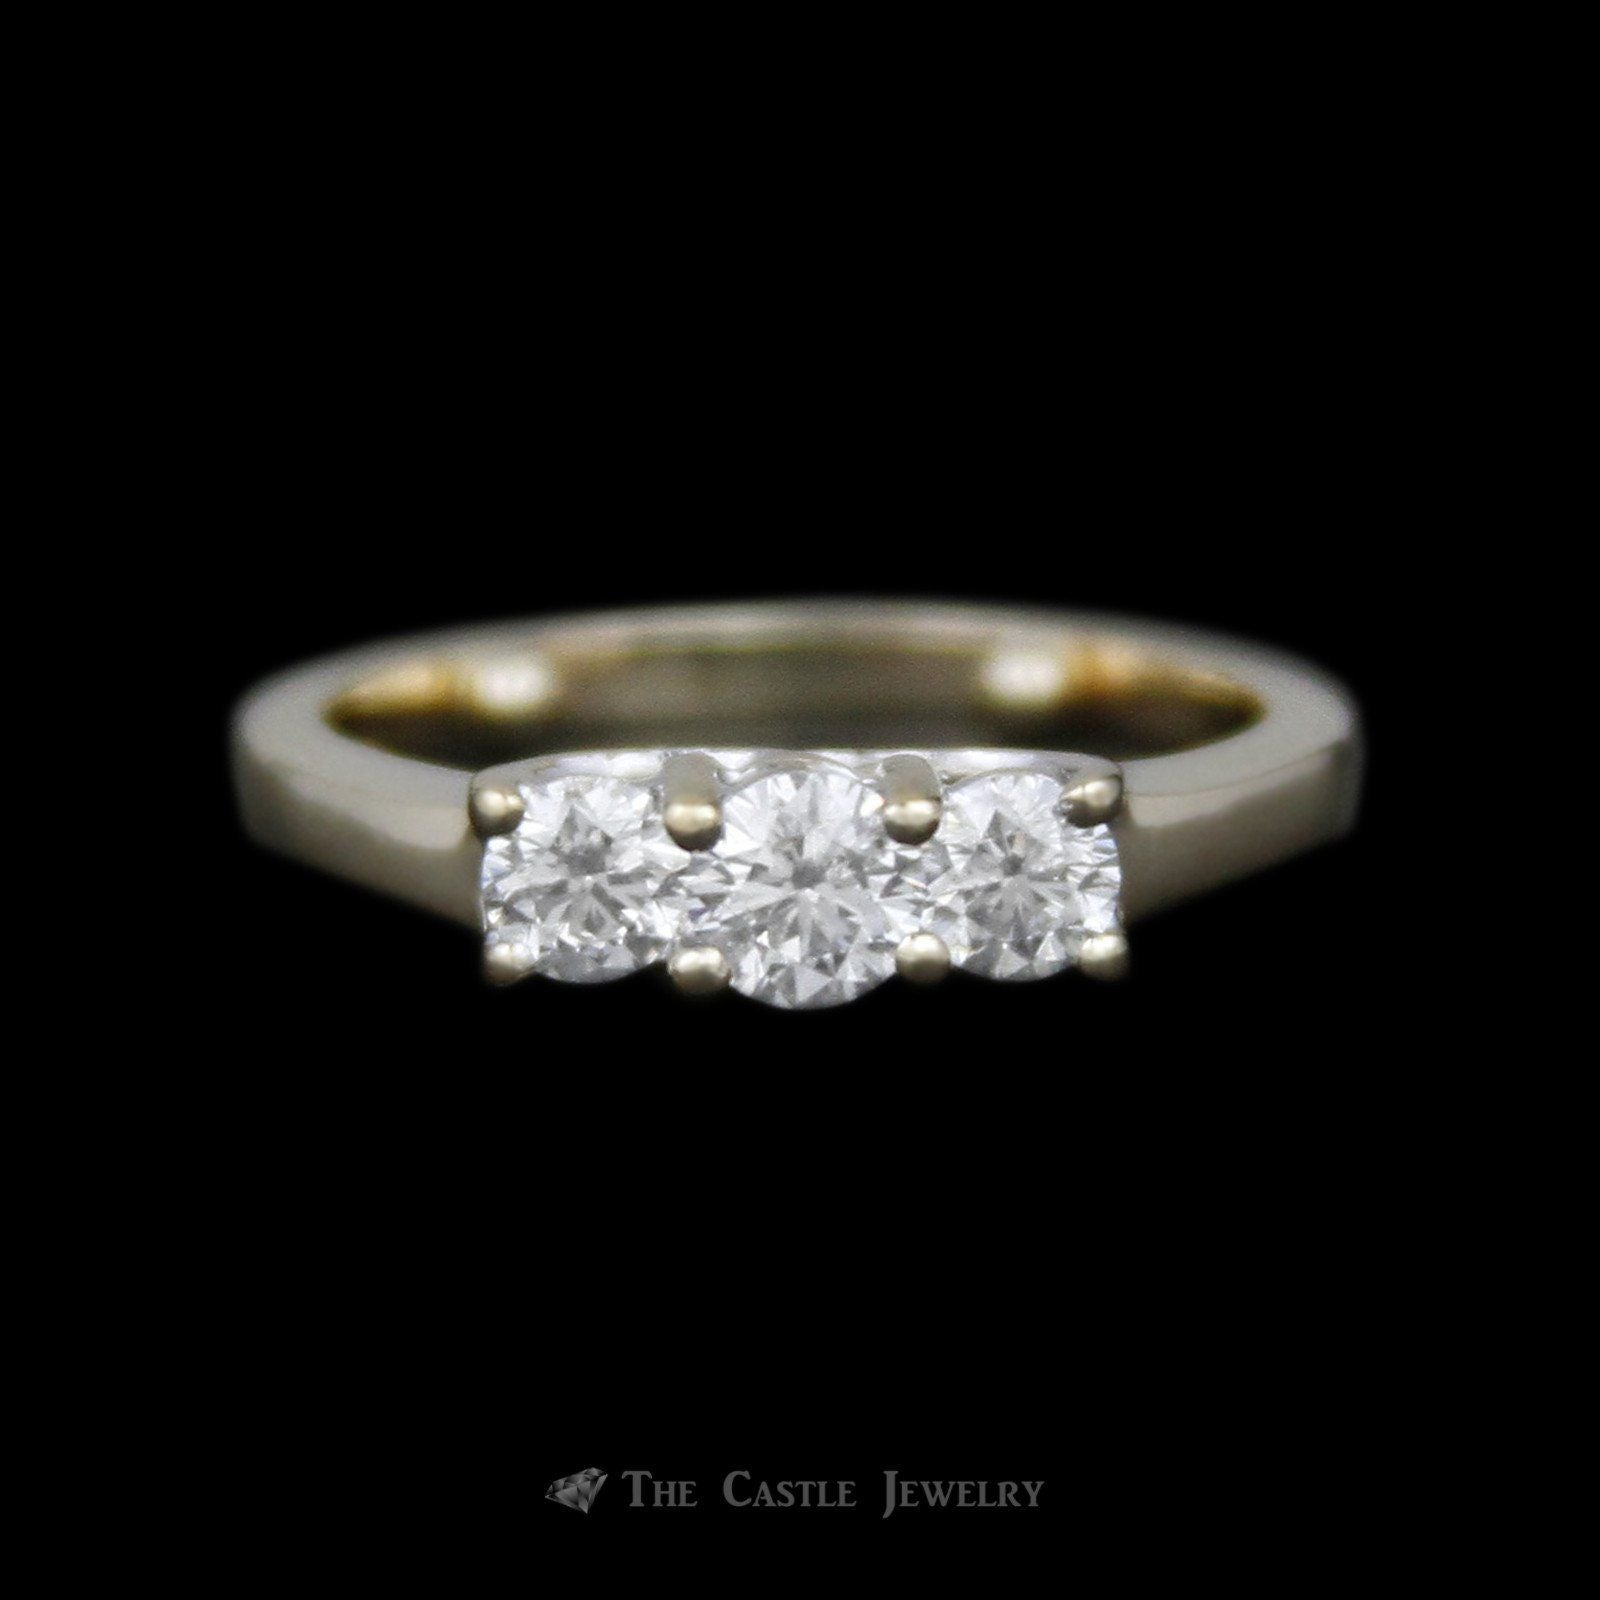 DeBeers Style 1cttw Round 3 Diamond Anniversary Ring in 14K Yellow Gold